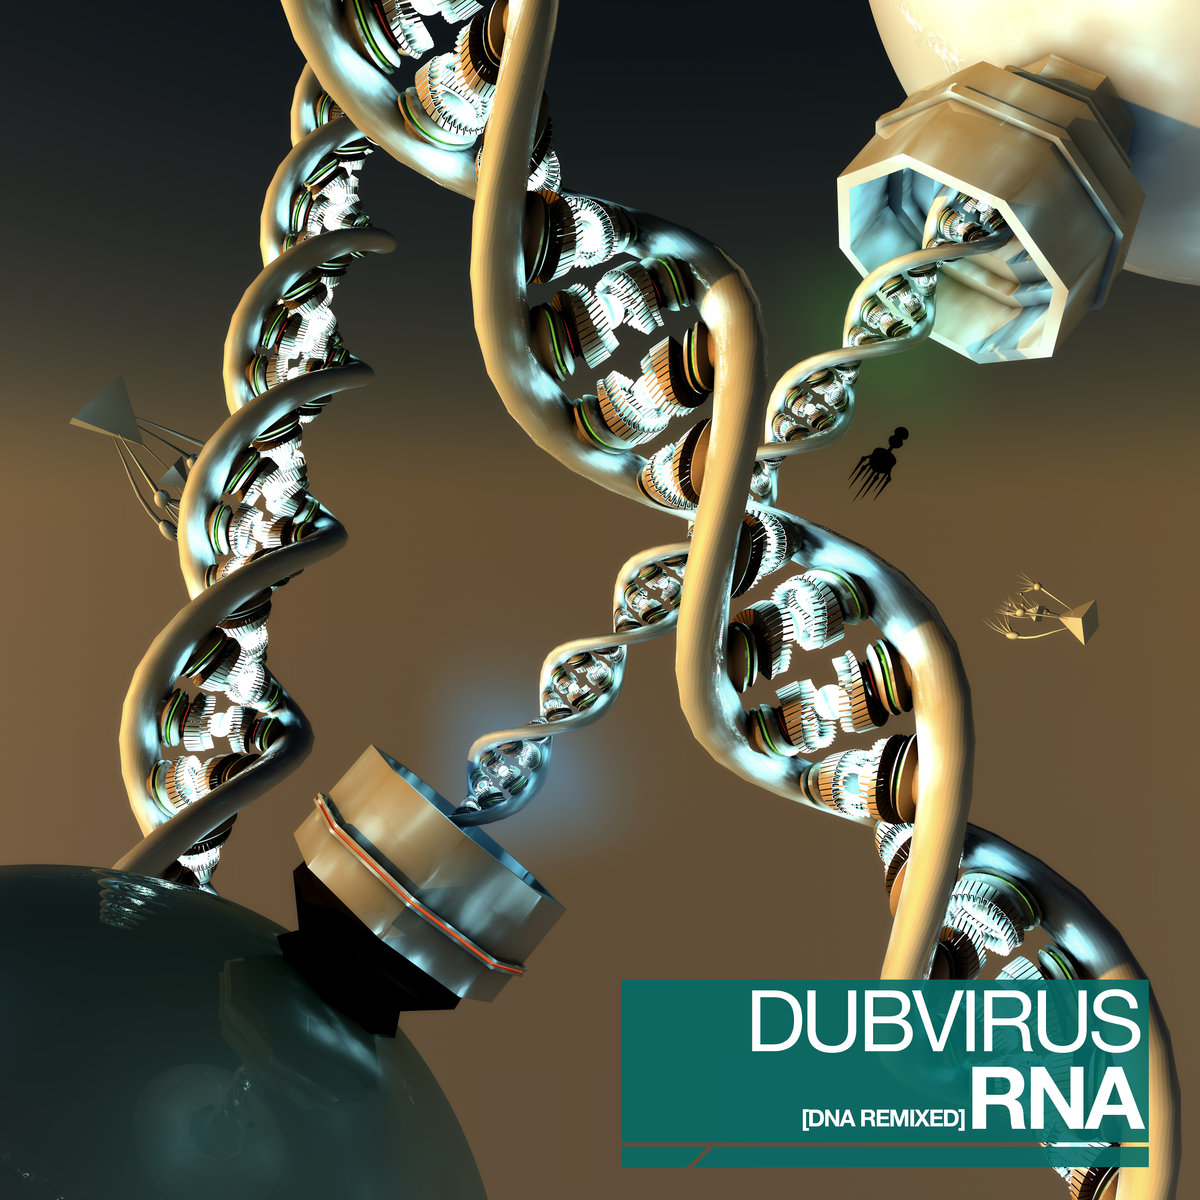 Dubvirus - DNA (ill-esha Remix) @ 'RNA (DNA Remixed)' album (bass, dubvirus)